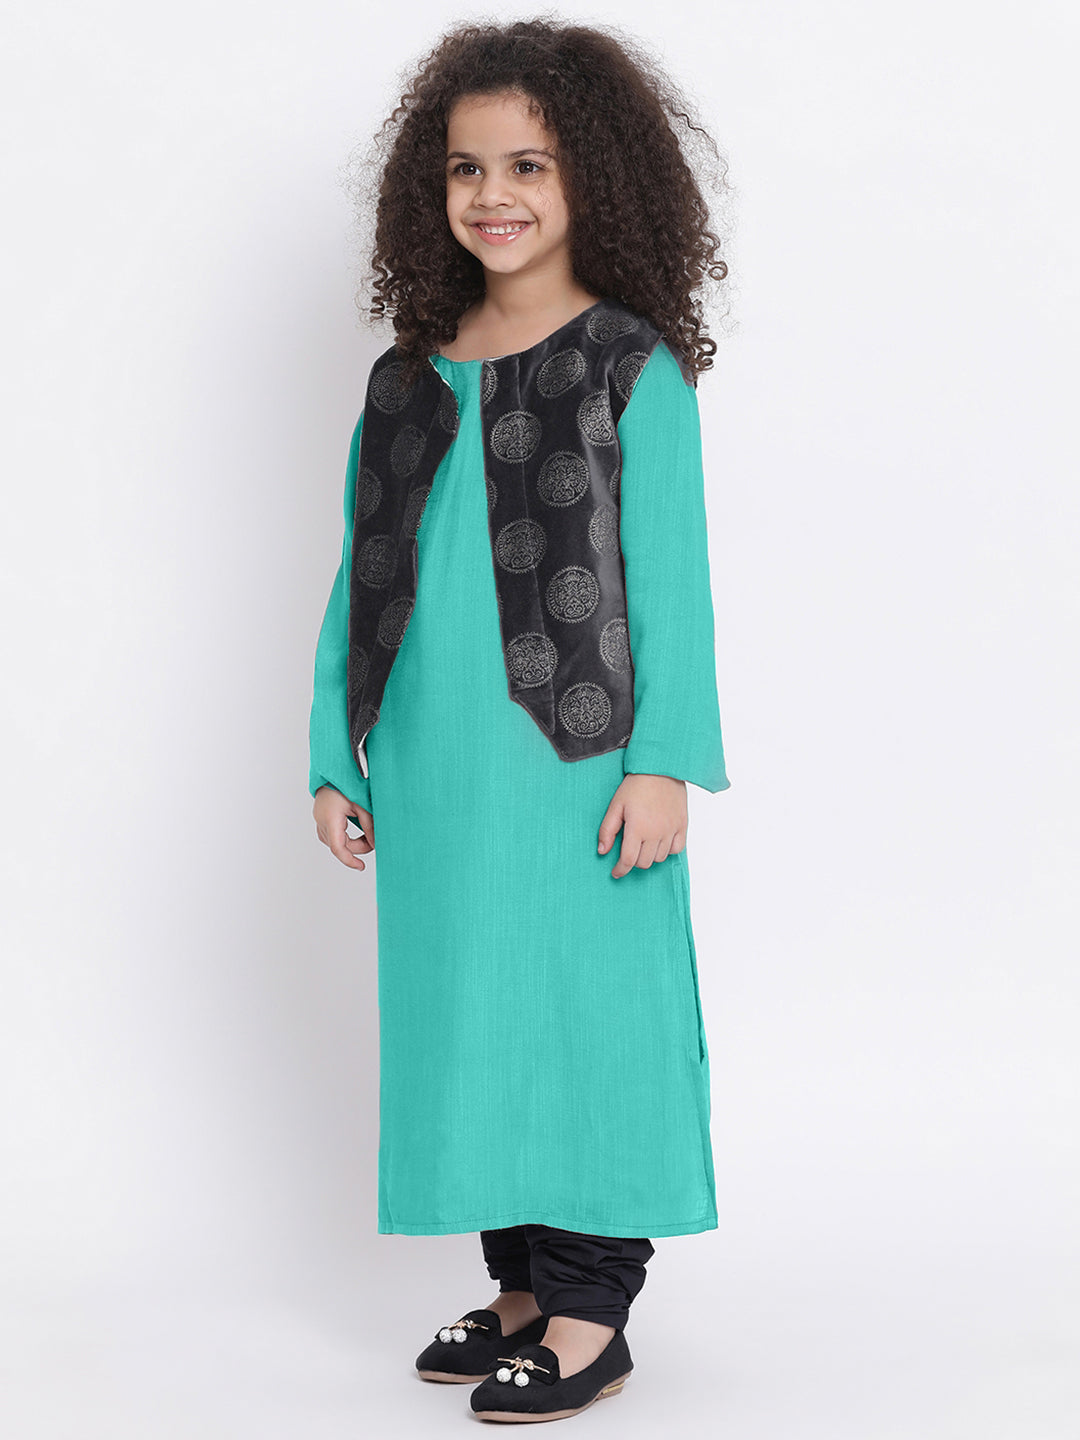 URVI skyblue Kurta pajama with shrug for Girls